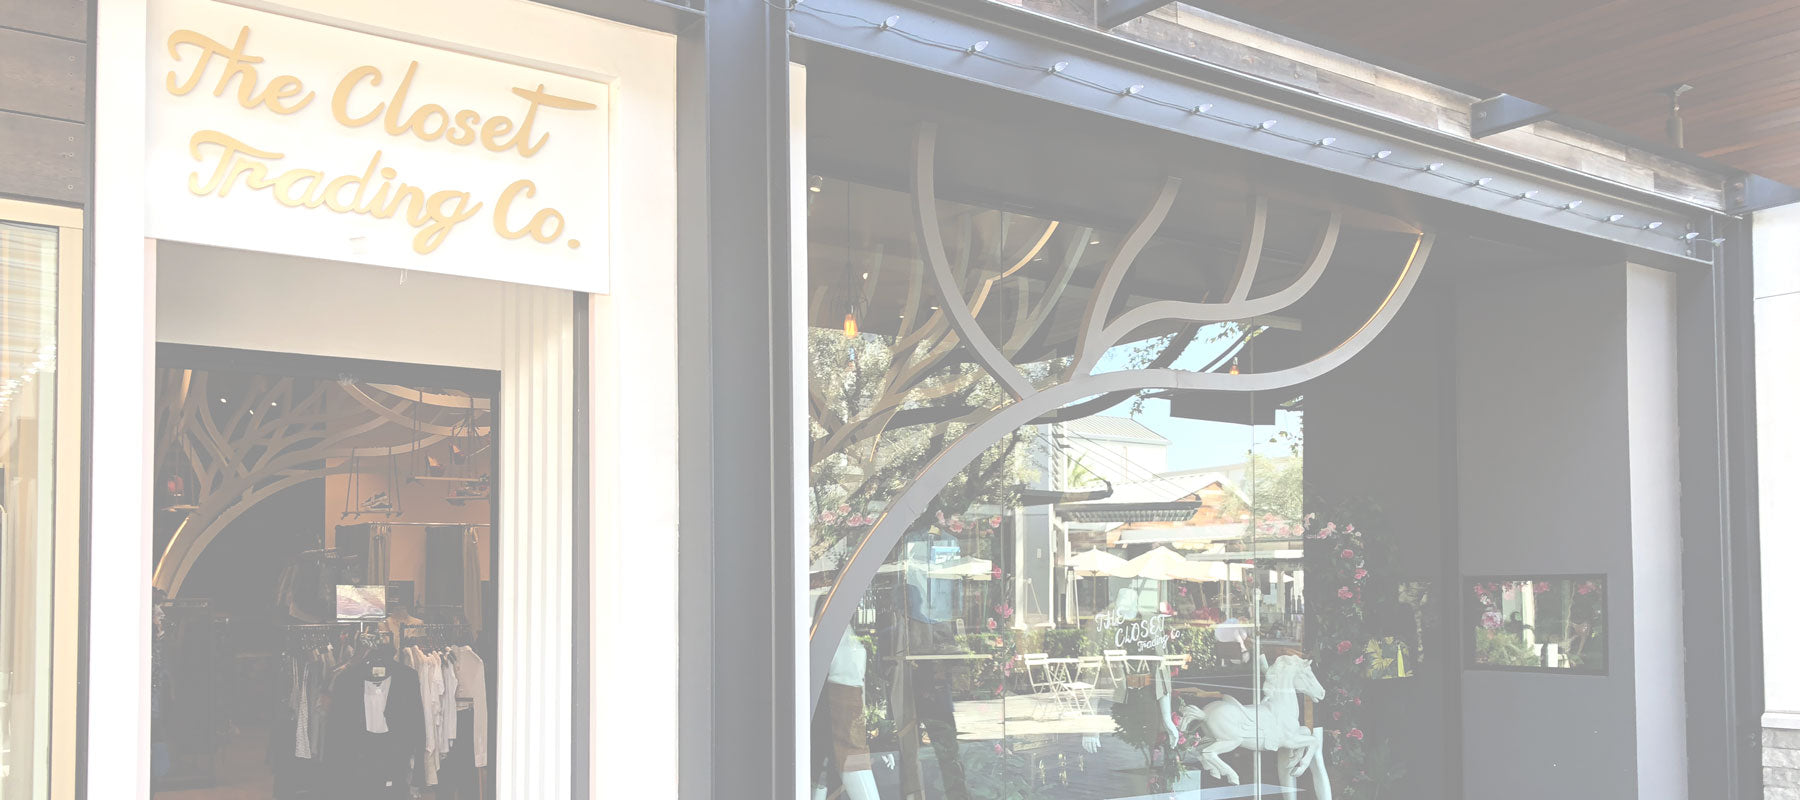 The Closet Trading Company - Westfield Topanga Mall, Woodland Hills, California